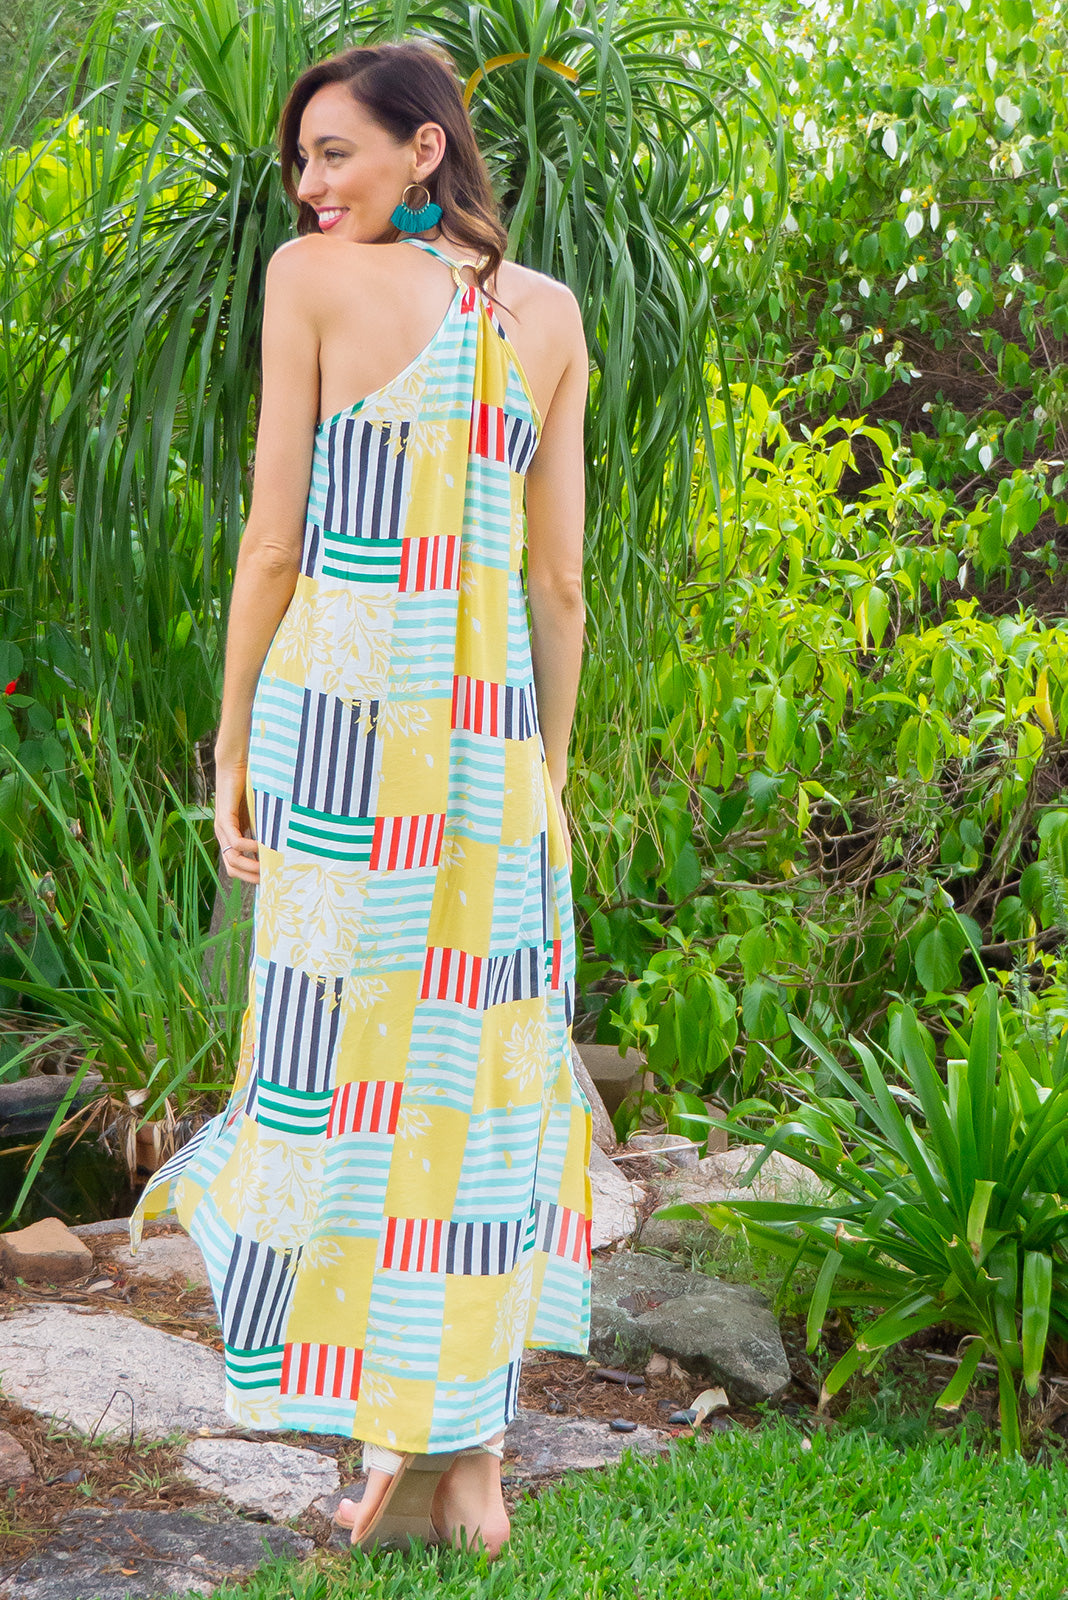 Hibiscus Square Dance Maxi Beach Dress in a chic geometric patchwork prin on a rayon nylon blend woven fabric comes with adjustable straps and a plaited belt